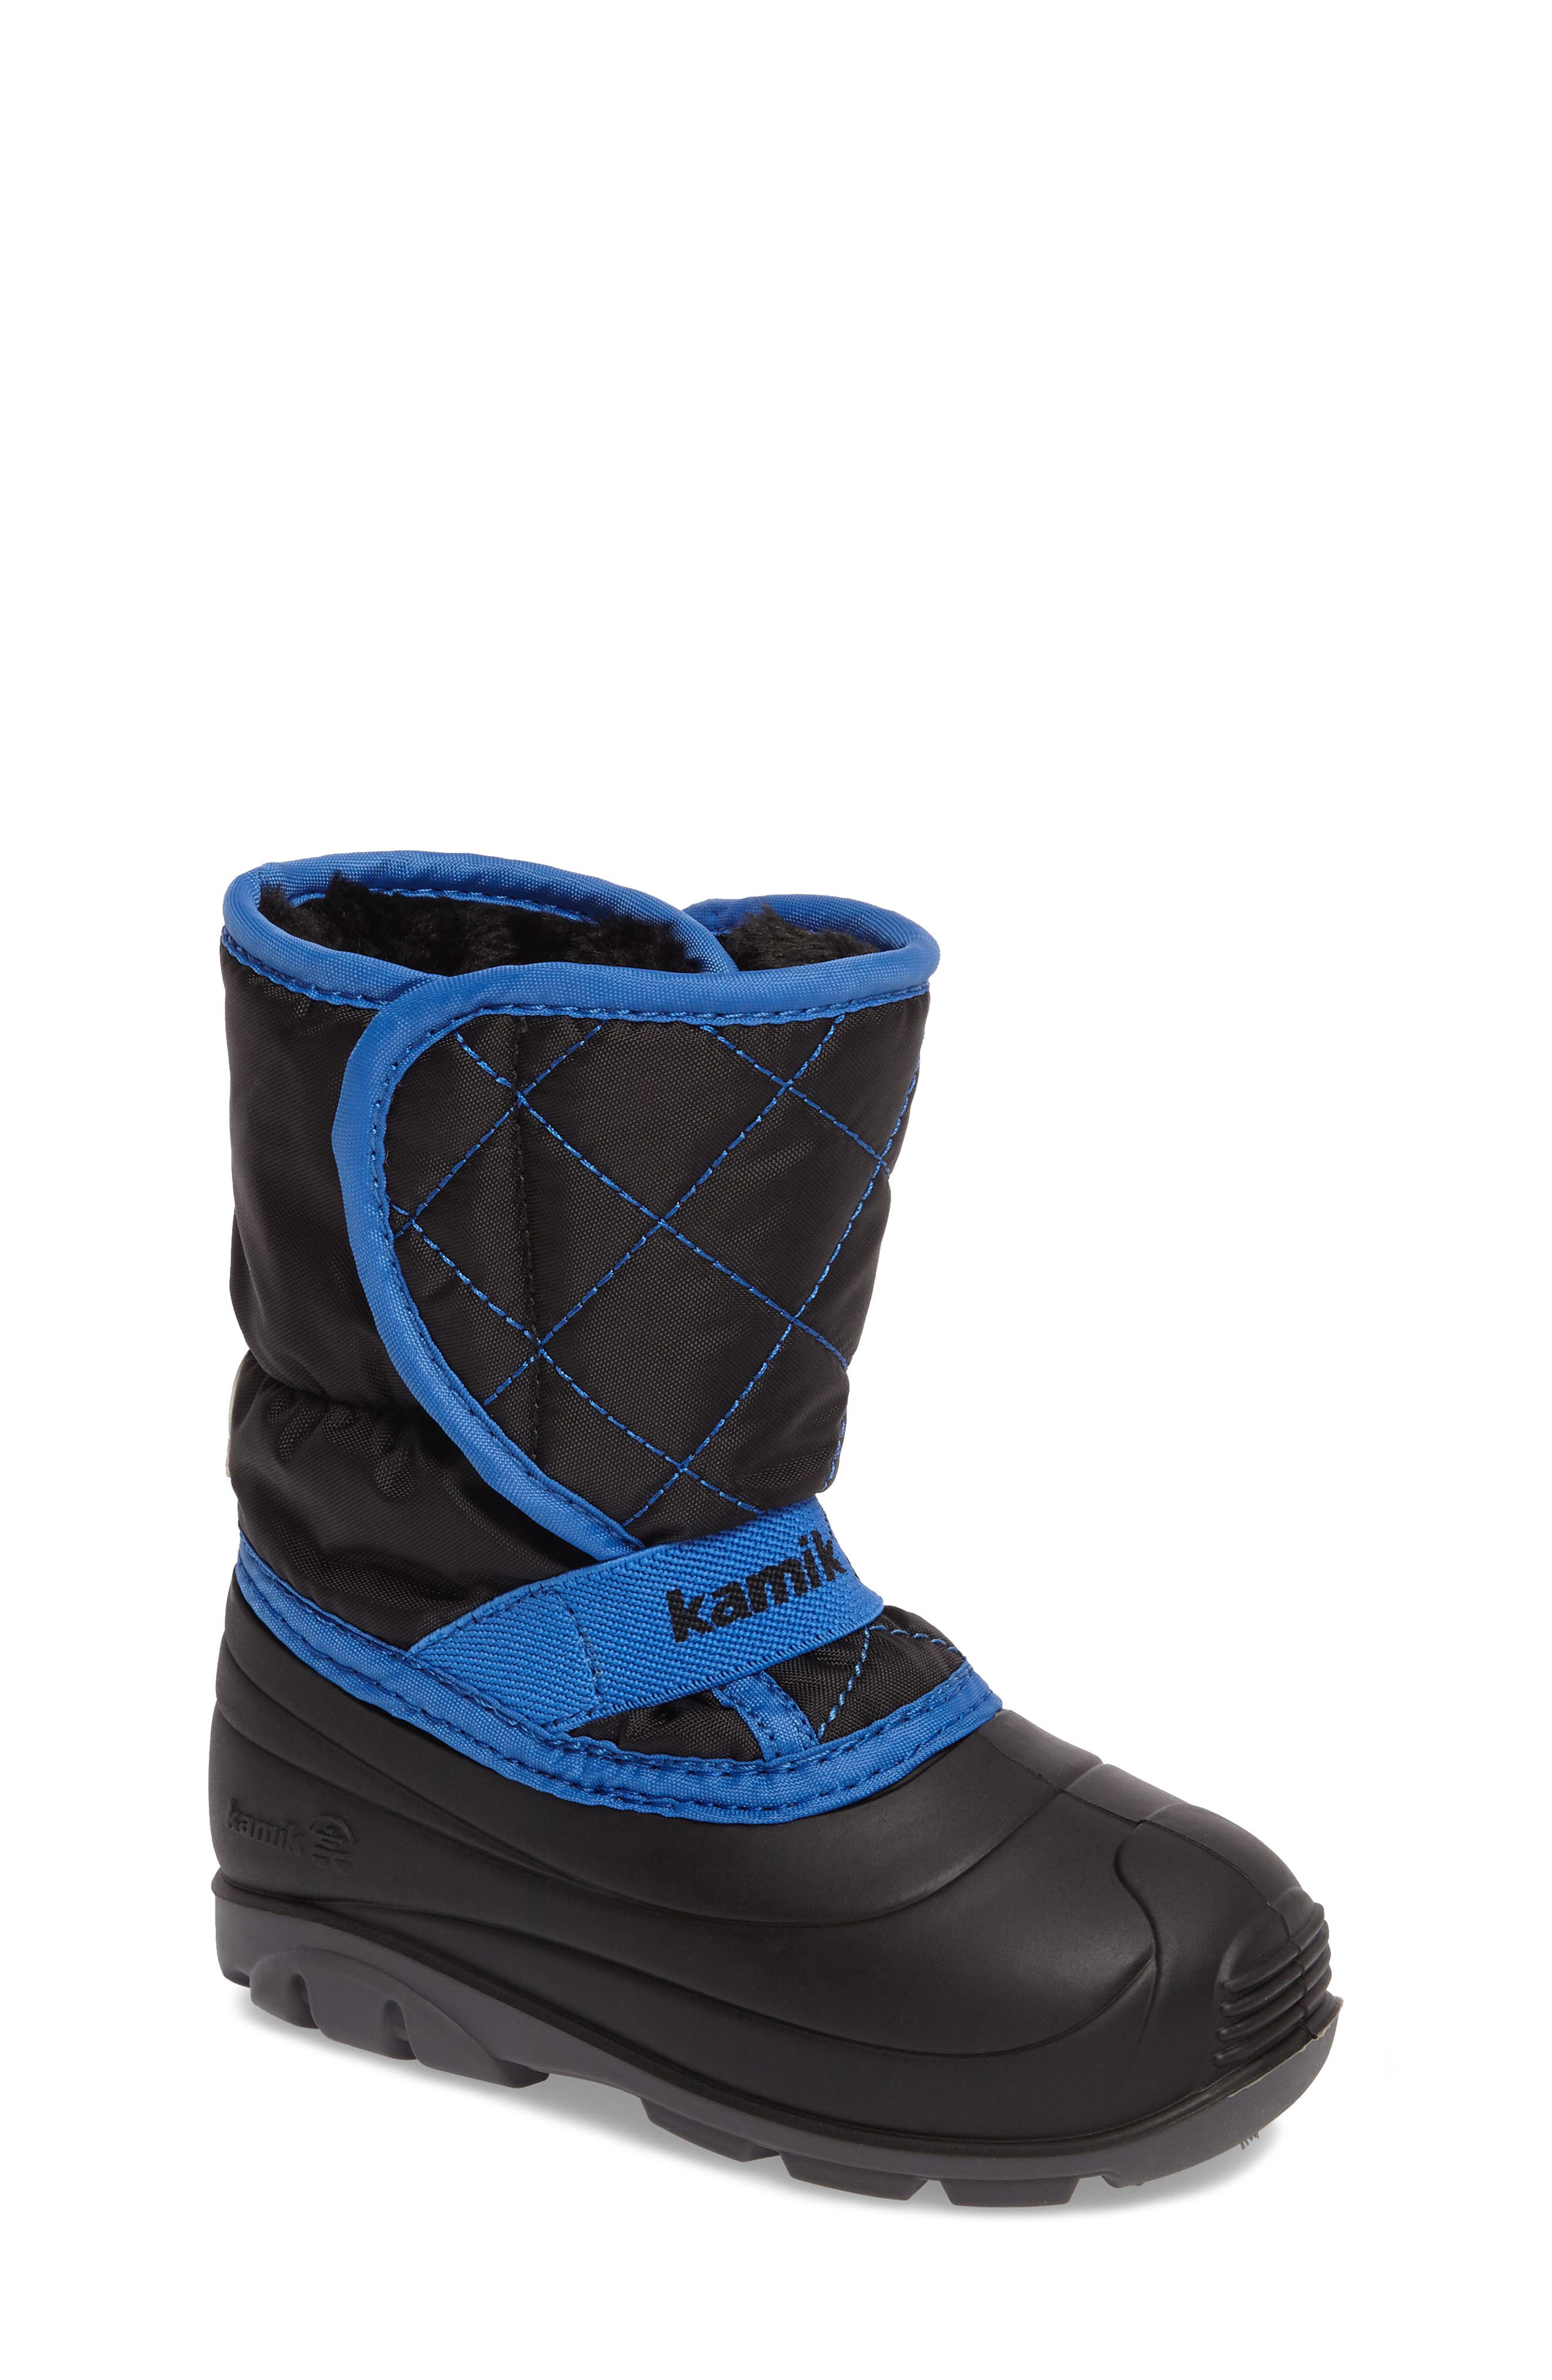 Pika2 Faux Fur Insulated Waterproof Snow Boot,                             Main thumbnail 1, color,                             010